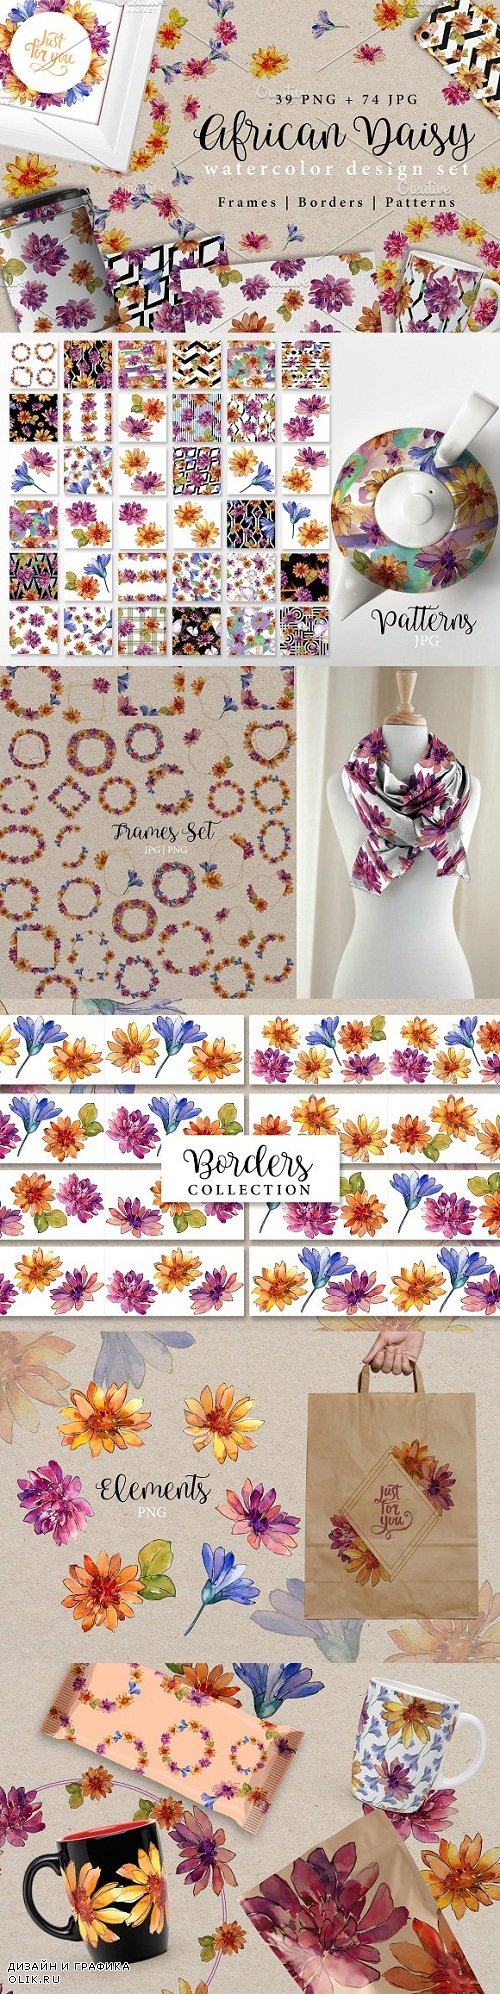 African daisy PNG watercolor set - 2962398